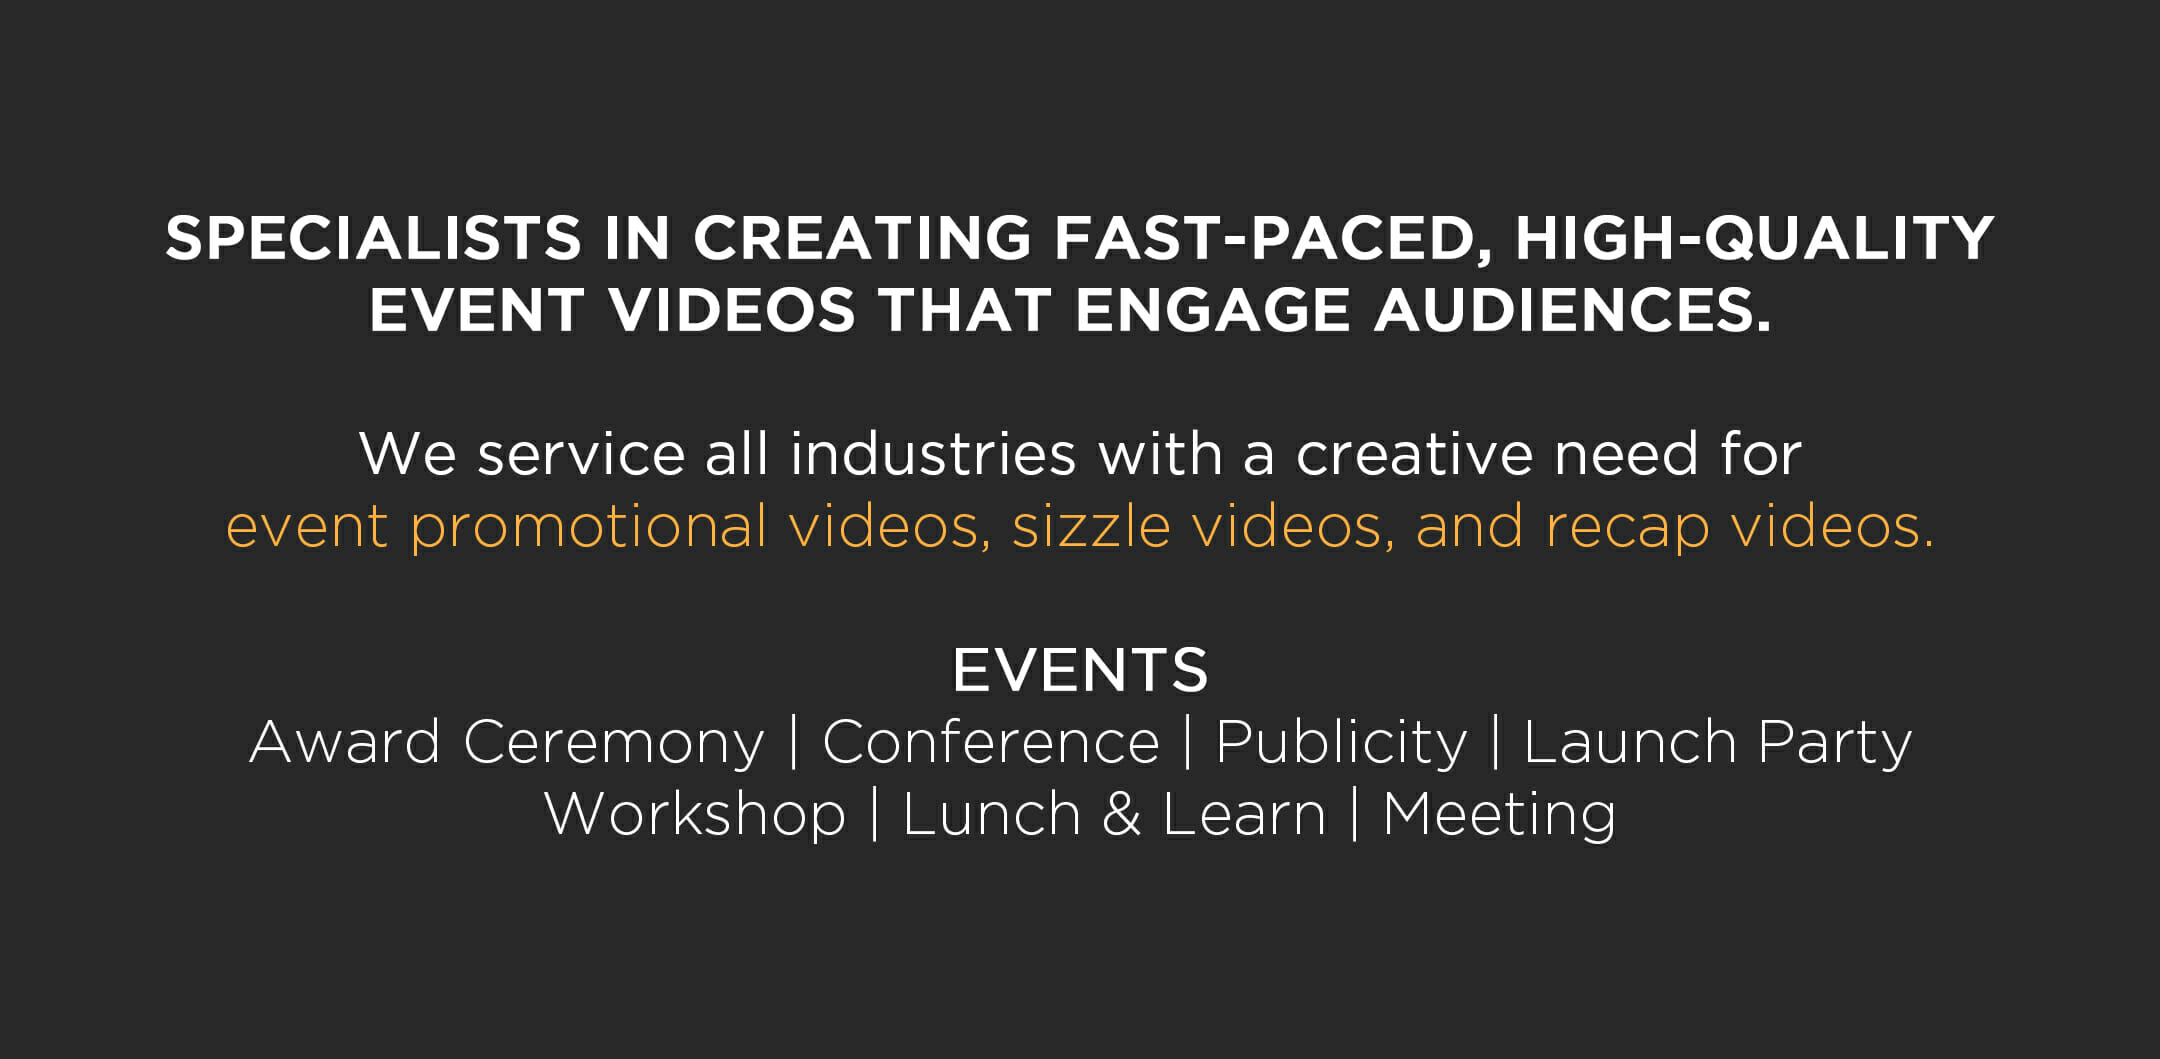 SPECIALISTS IN CREATING FAST-PACED, HIGH-QUALITY EVENT VIDEOS THAT ENGAGE AUDIENCES. We service all industries with a creative need for event promotional videos, sizzle videos, and recap videos. EVENTS Award Ceremony | Conference | Publicity | Launch Party Workshop | Lunch & Learn | Meeting